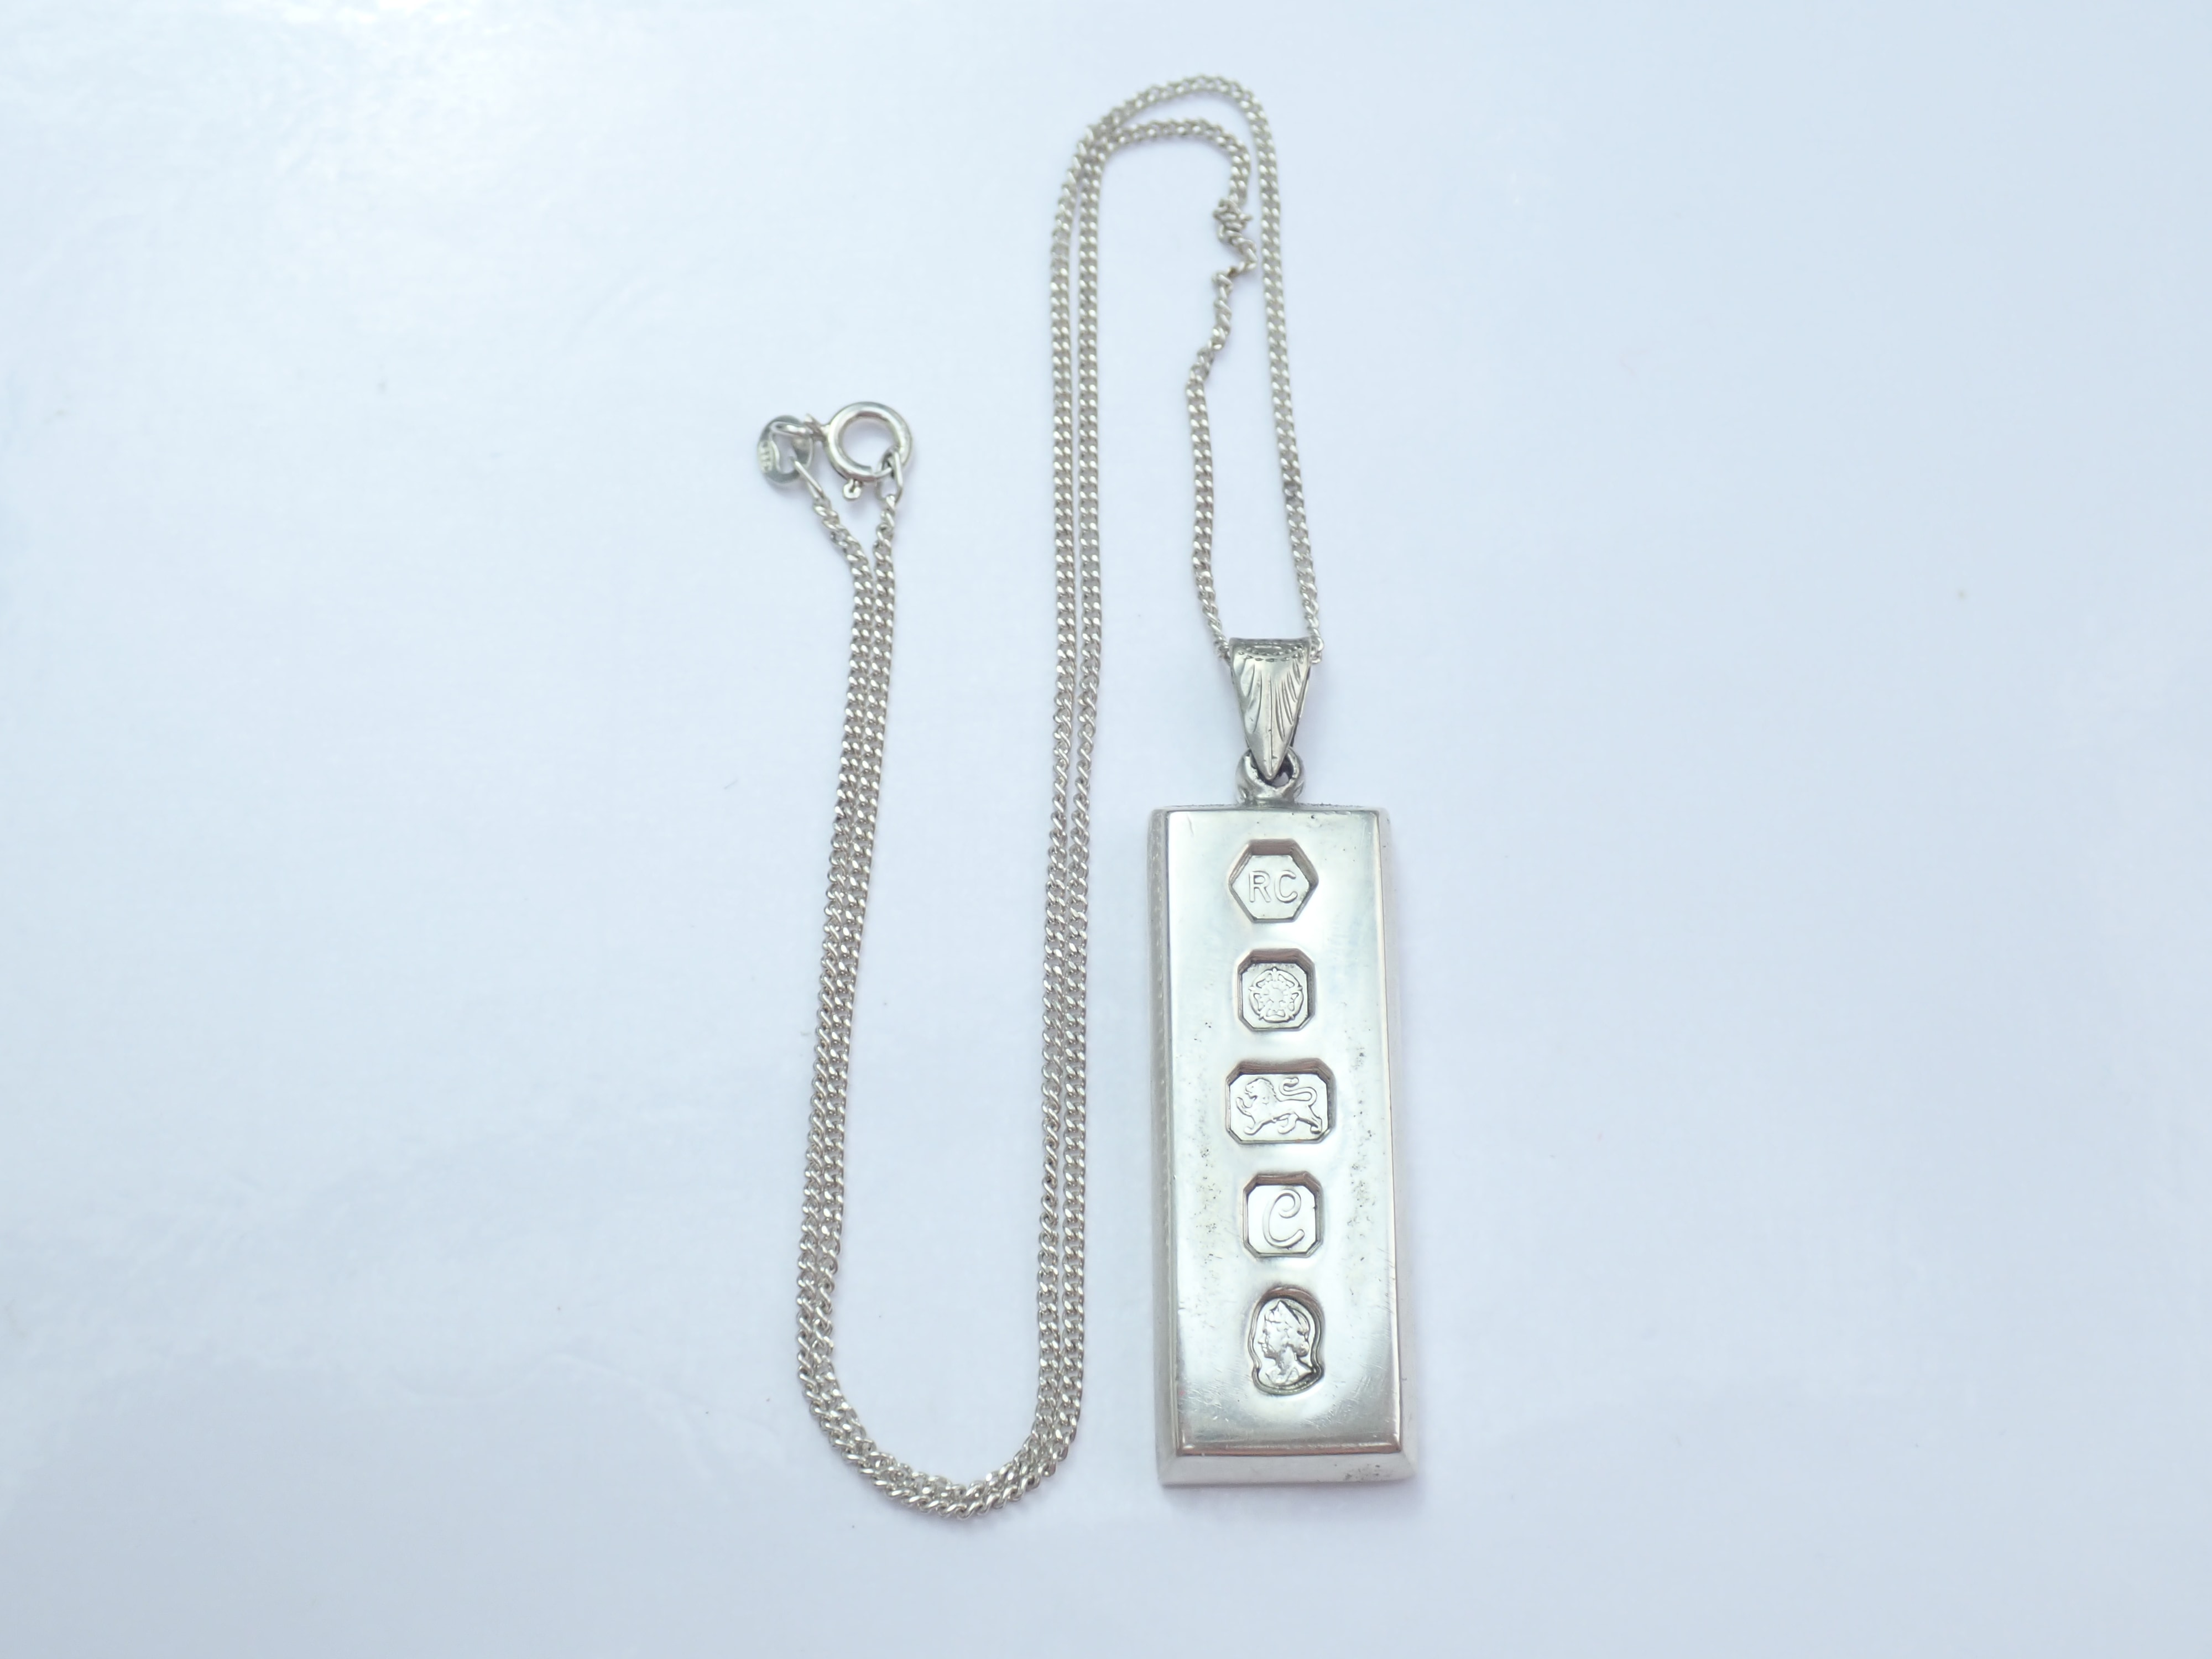 Superb! Vintage 1977 Sterling Silver 925 Heavy Ingot Pendant & 18″ Curb chain 32.5gms #31